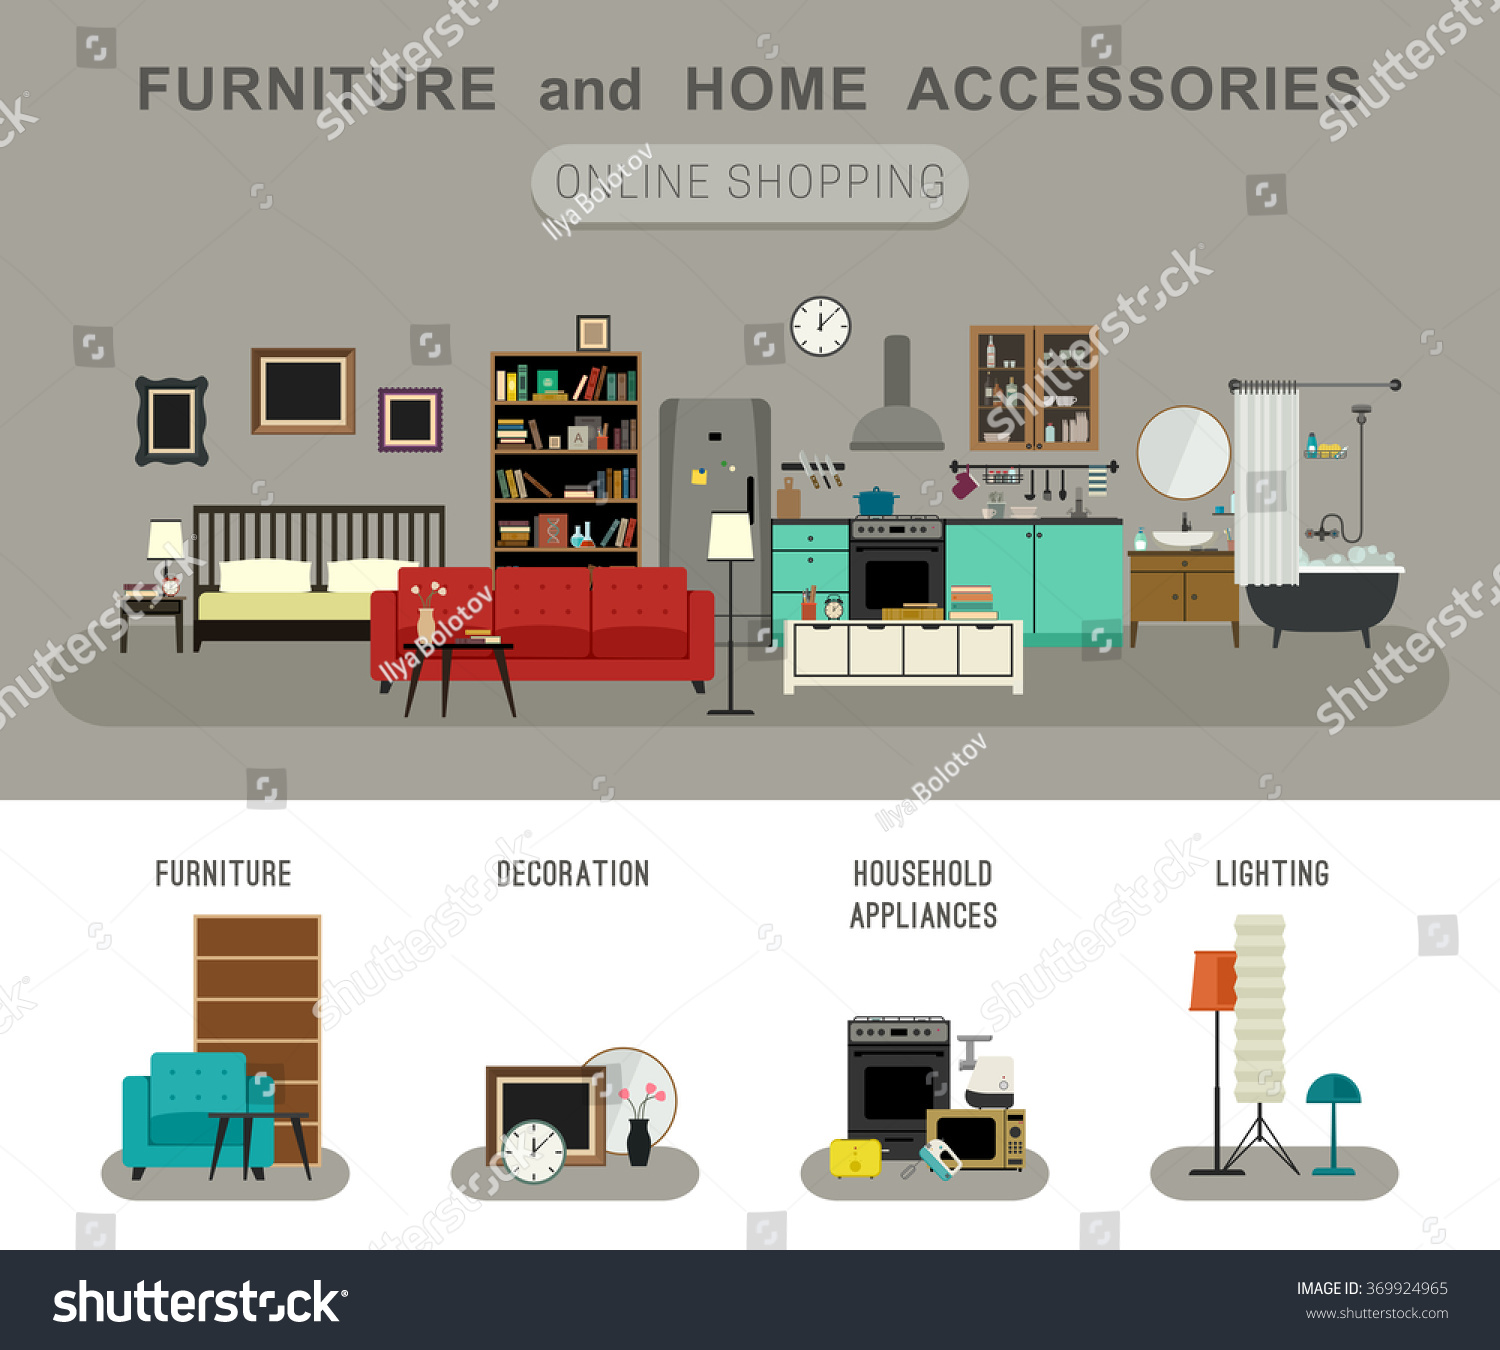 Furniture And Home Accessories Banner With Flat Icons Sofa, Bookshelf, Bed,  Bathroom,